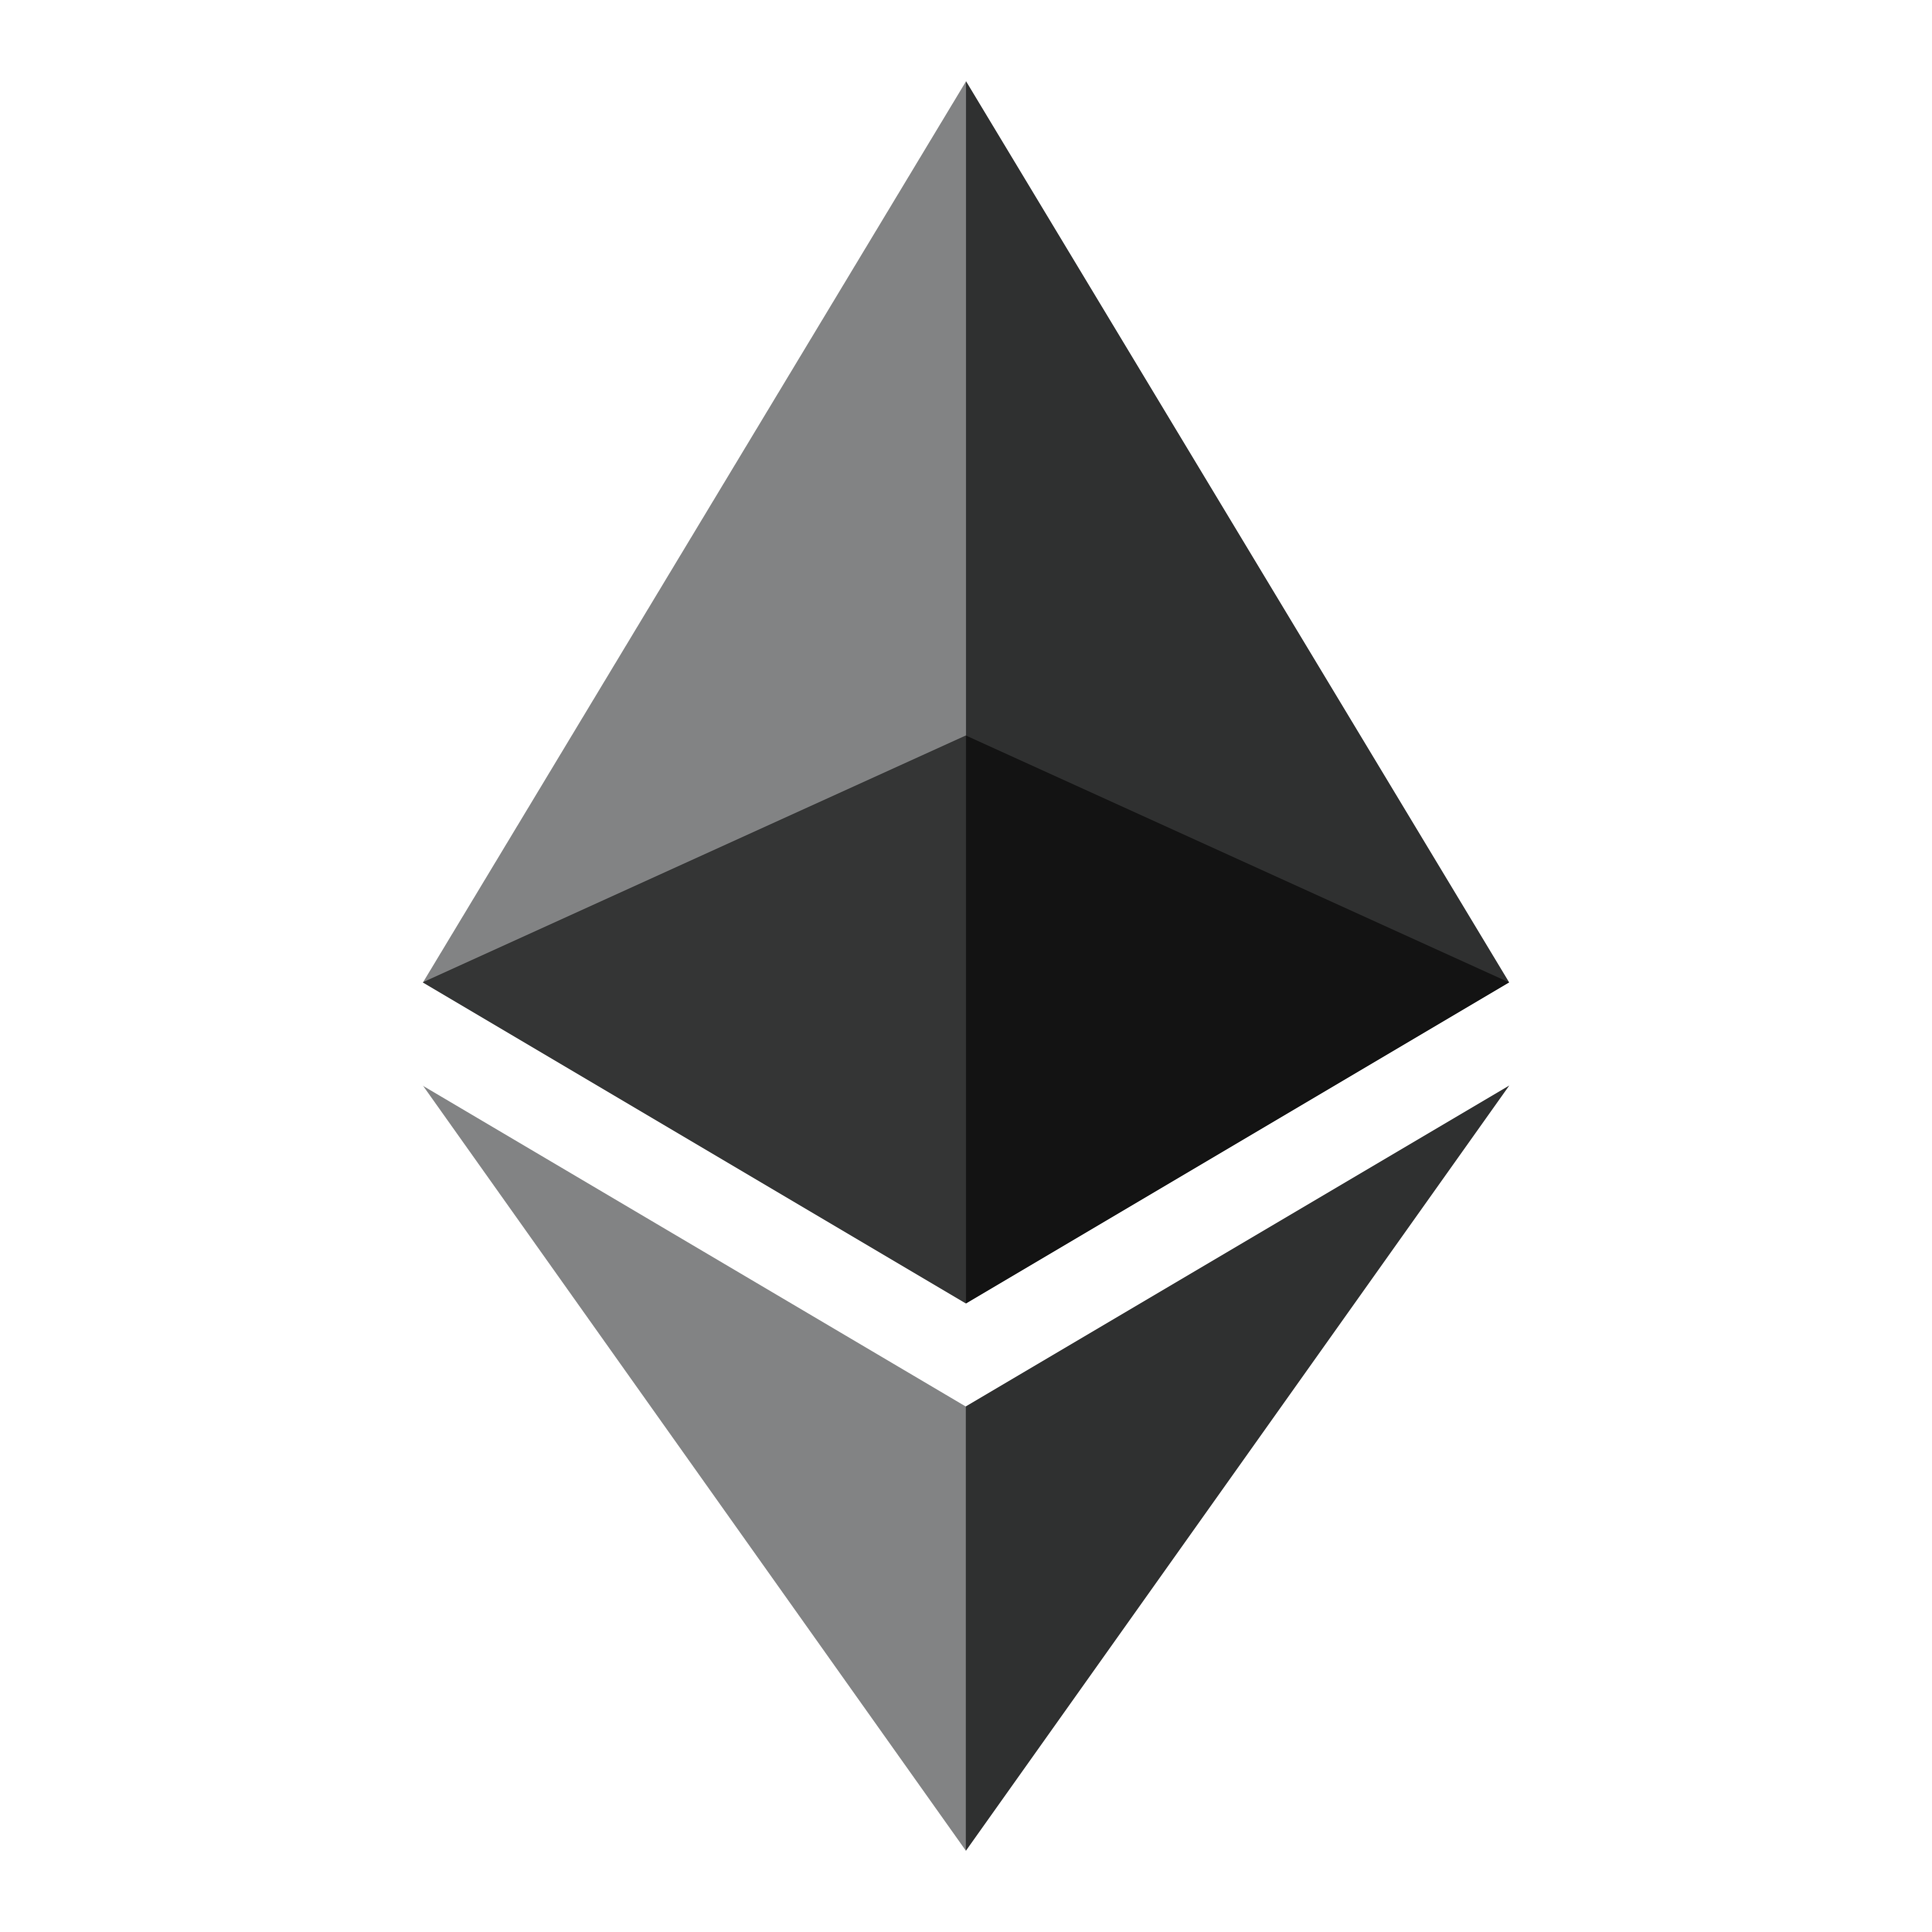 Cryptocurrency Logo Tether Ethereum Bitcoin Free Photo PNG PNG Image